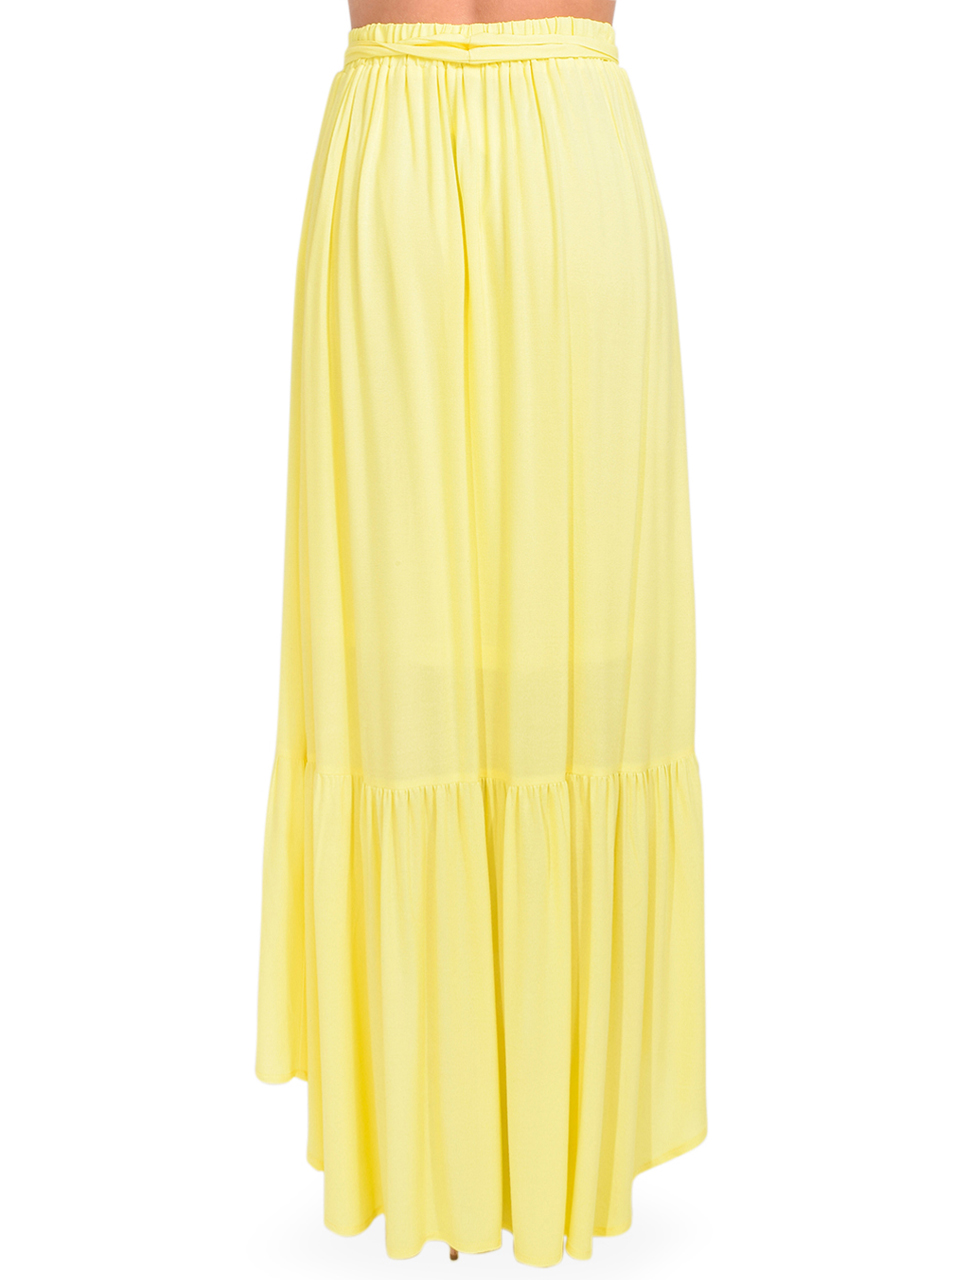 KASIA Sifnos Maxi Skirt in Yellow Back View